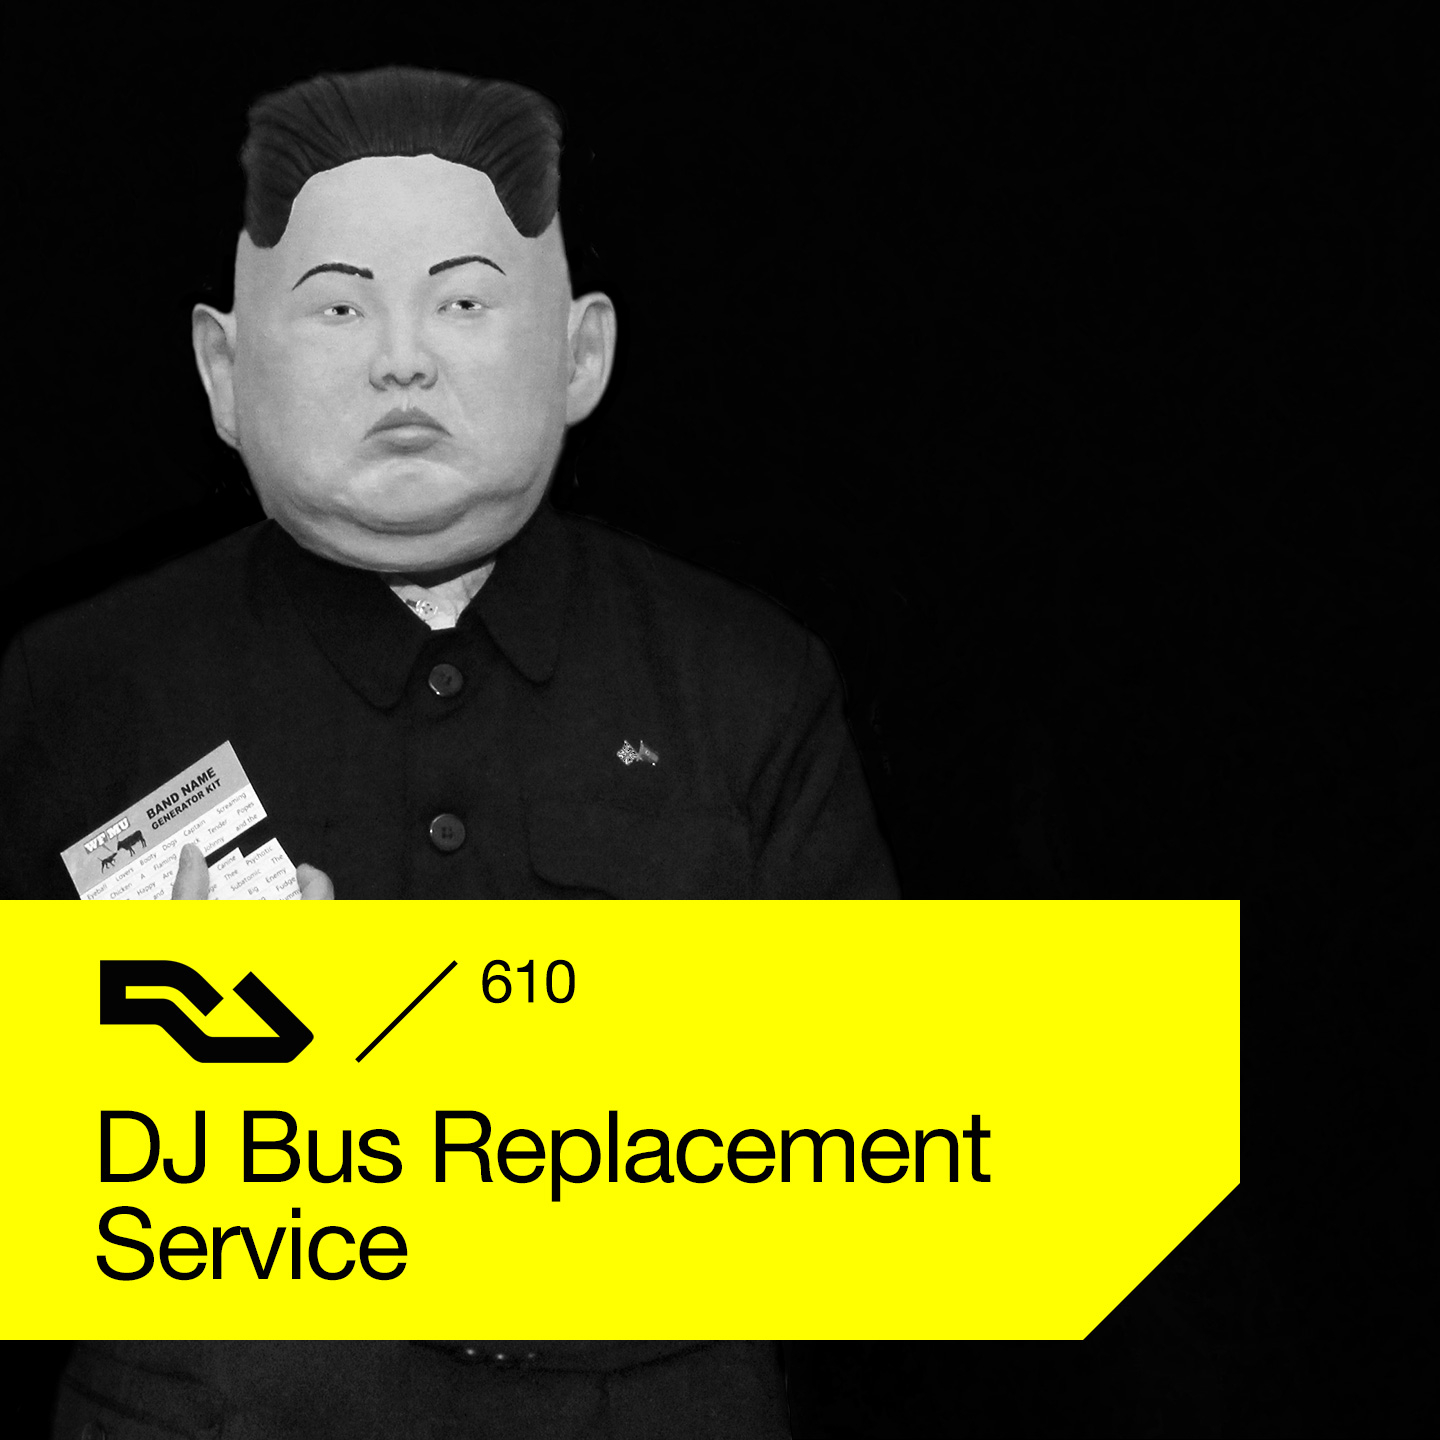 RA.610 DJ Bus Replacement Service